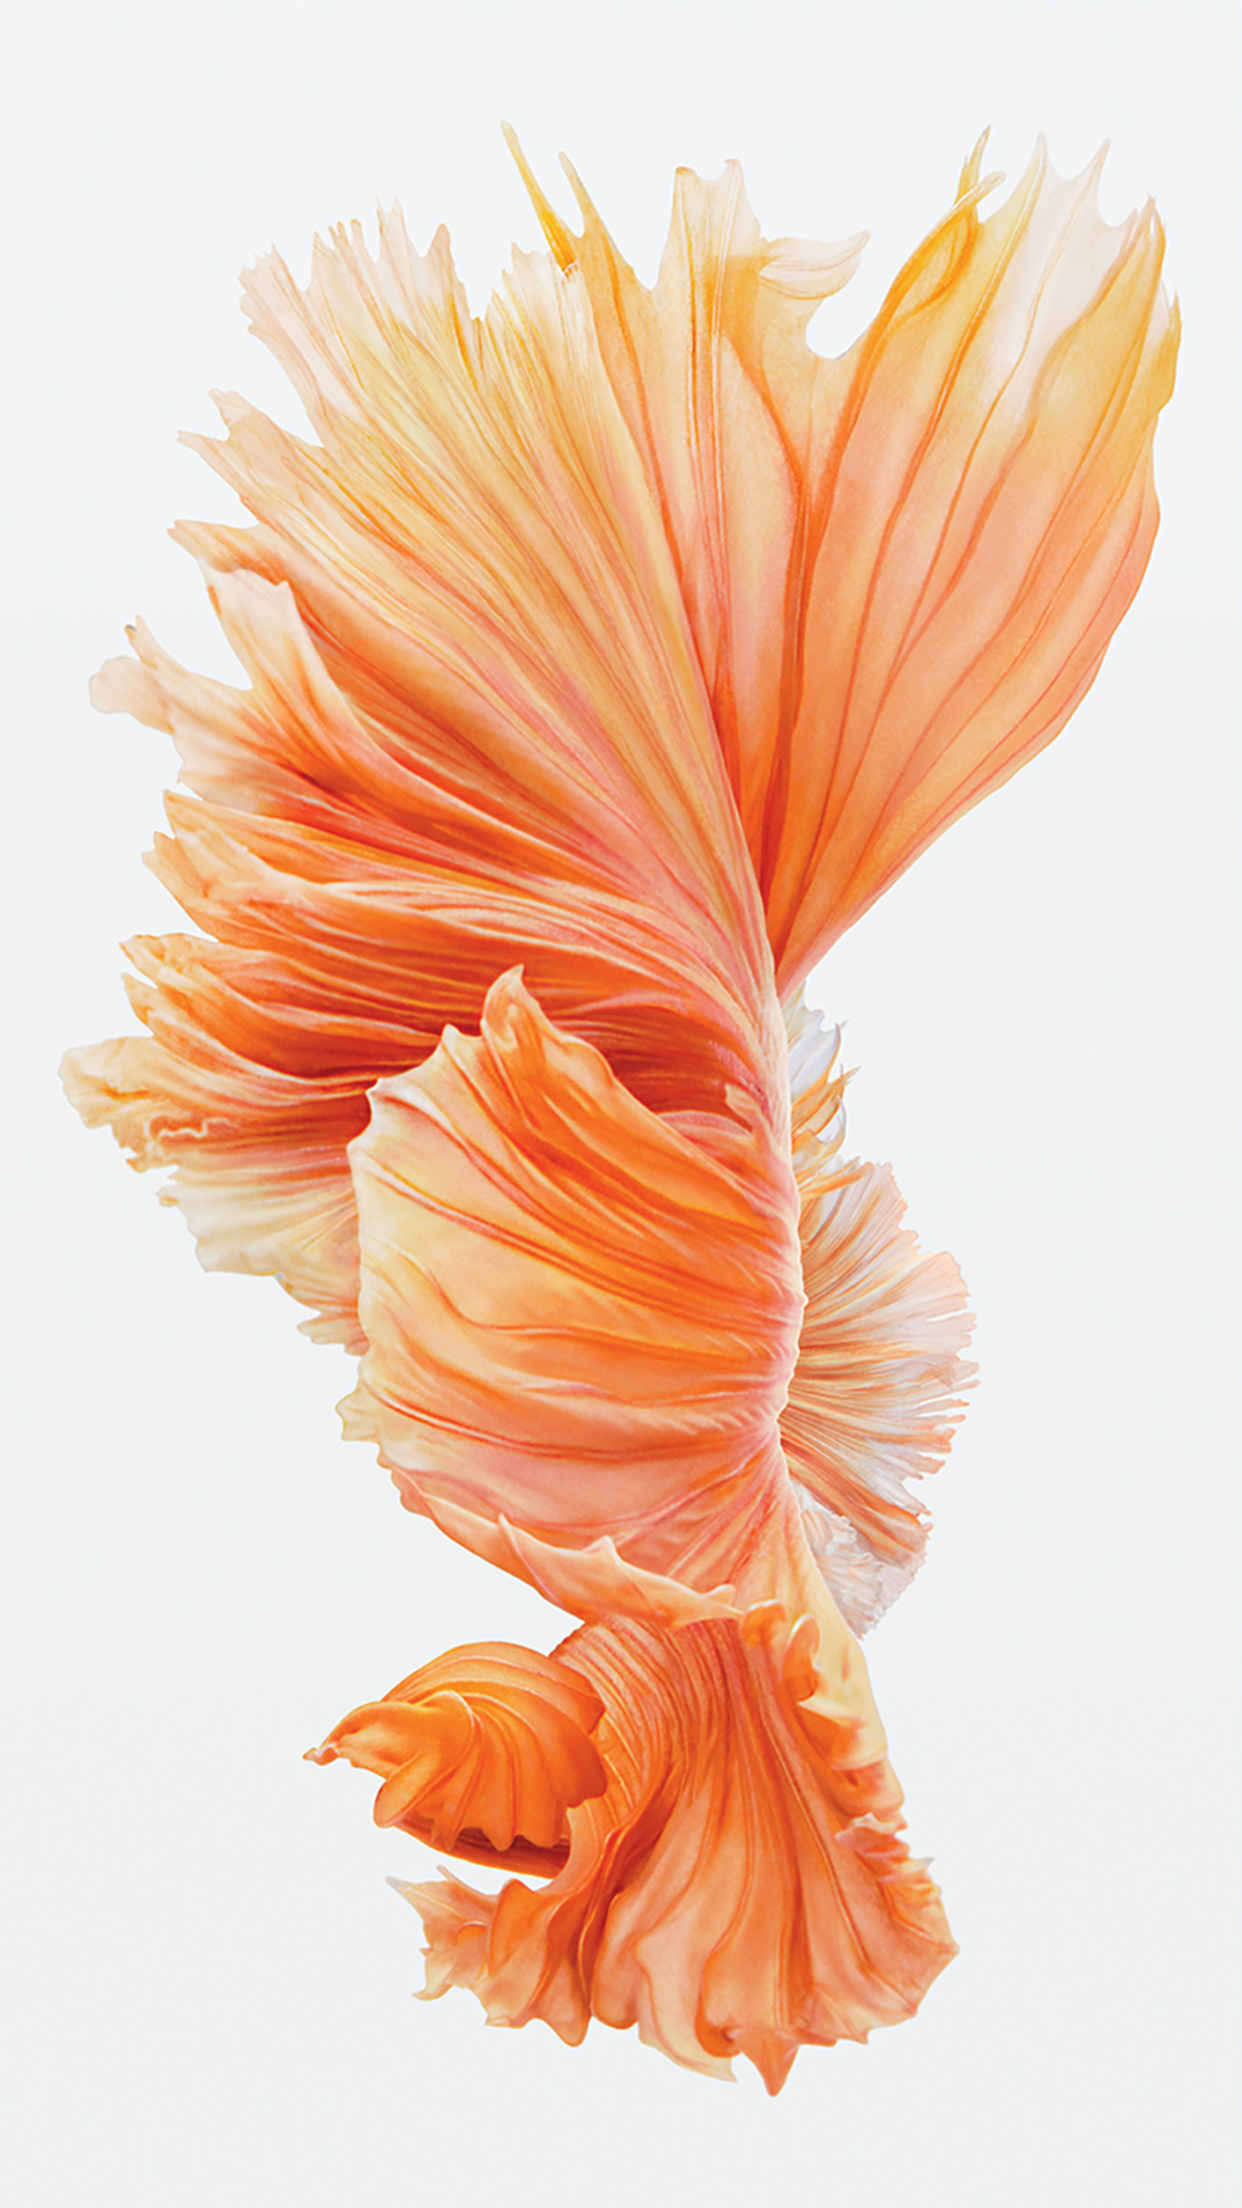 Get the Beautiful Live Wallpapers from iPhone 6s as Still Wallpapers 1242x2208